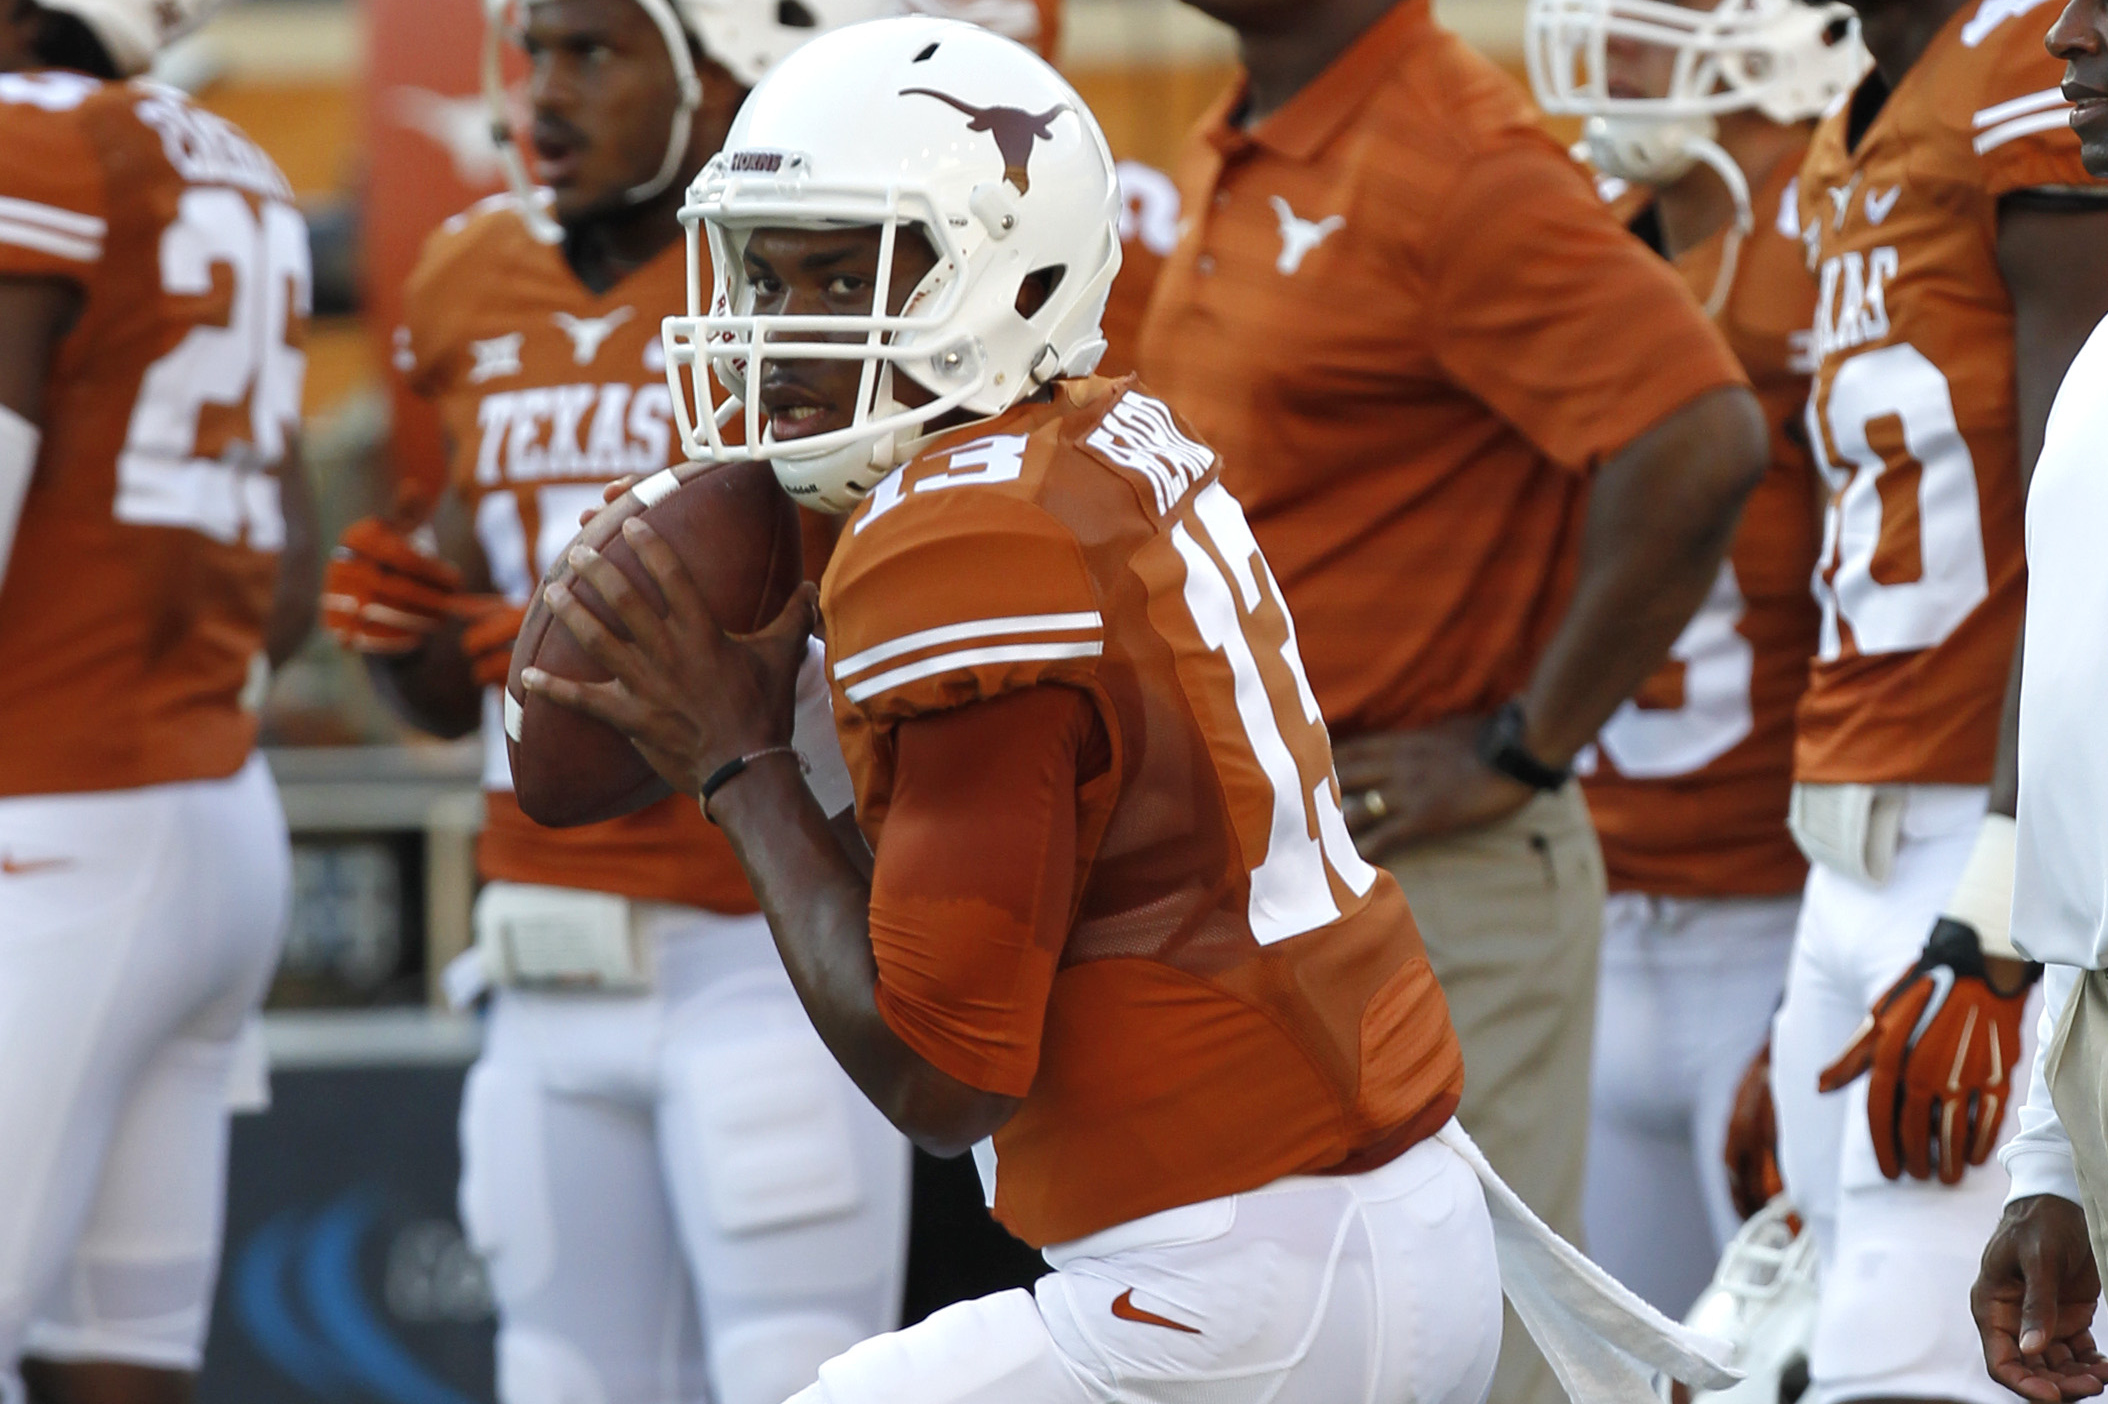 Texas Football: Early Look at Longhorns' 2015 RosterRelated